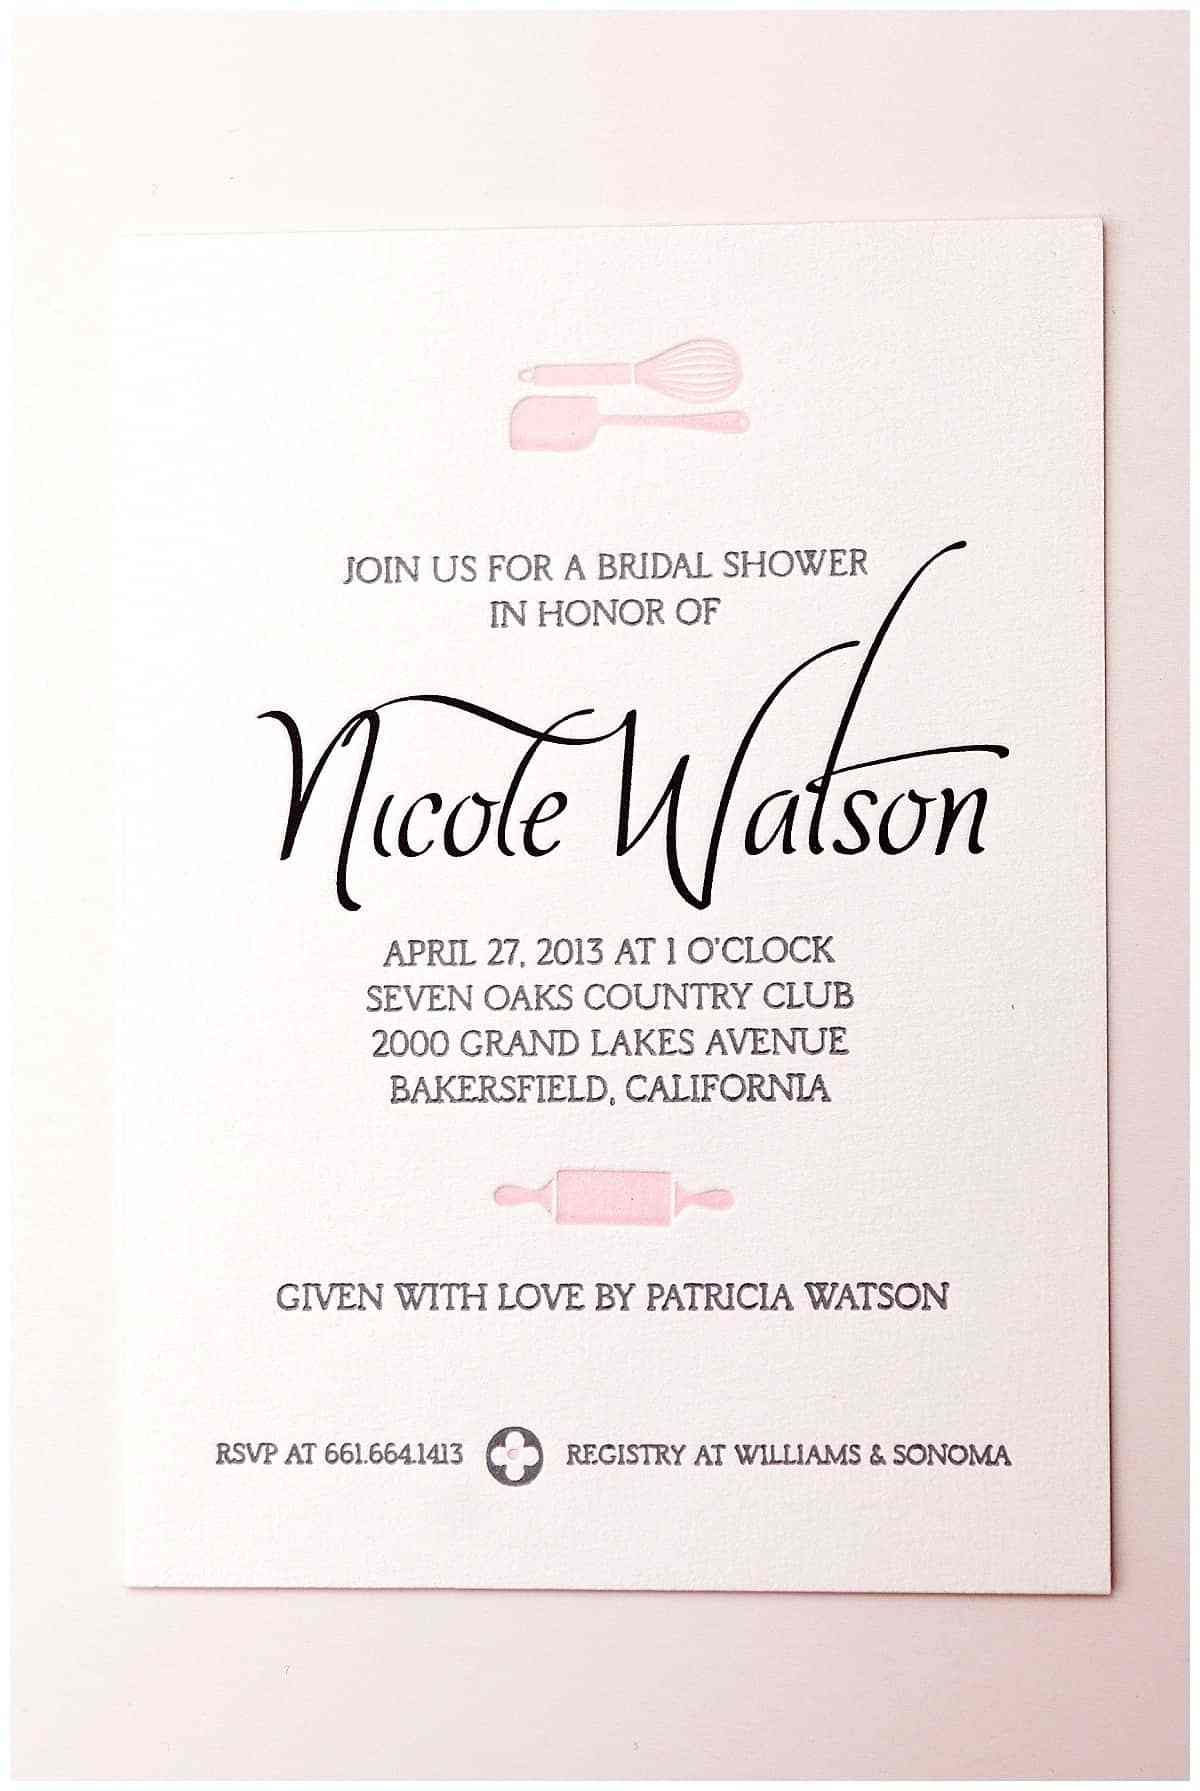 Bridal Shower Invites - 5 ideas for your theme | Bridal showers ...